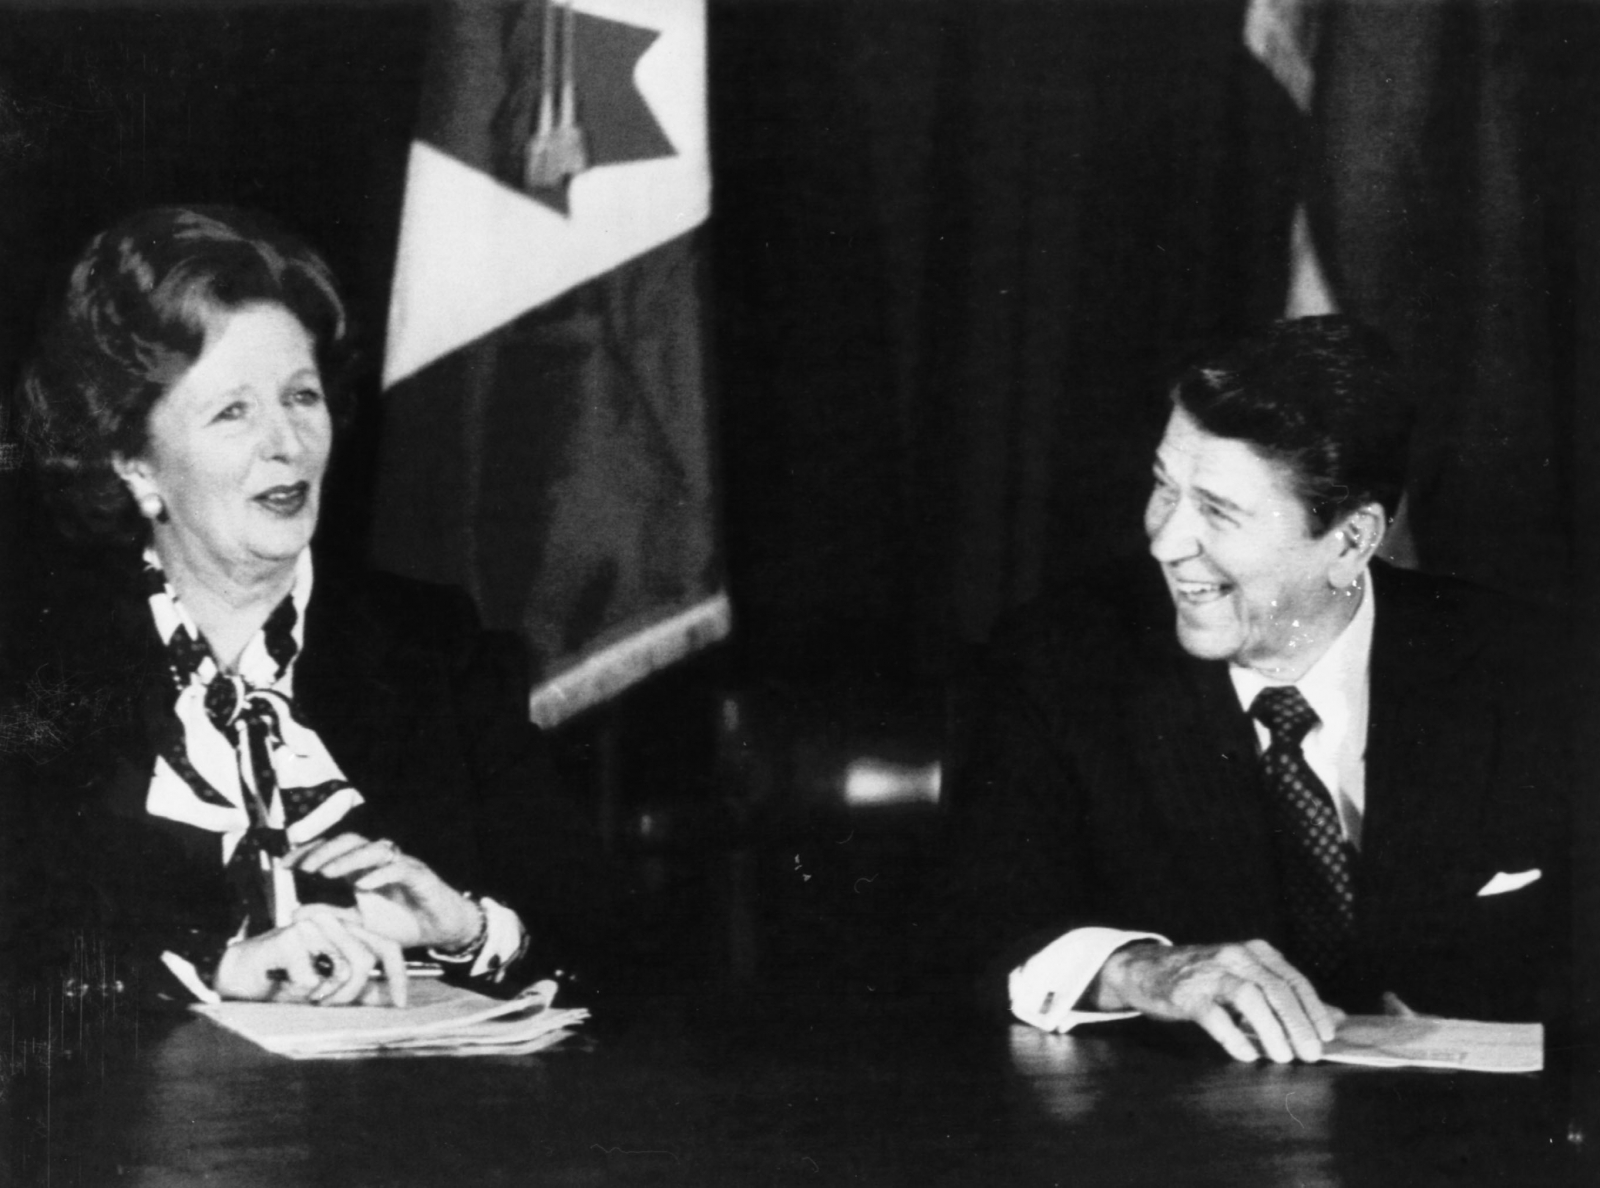 the problems and leadership skills of margaret thatcher and barack obama Margaret thatcher – a woman of impact barack obama's so are behaviour and communication skills in the early years, margaret thatcher worked on her.